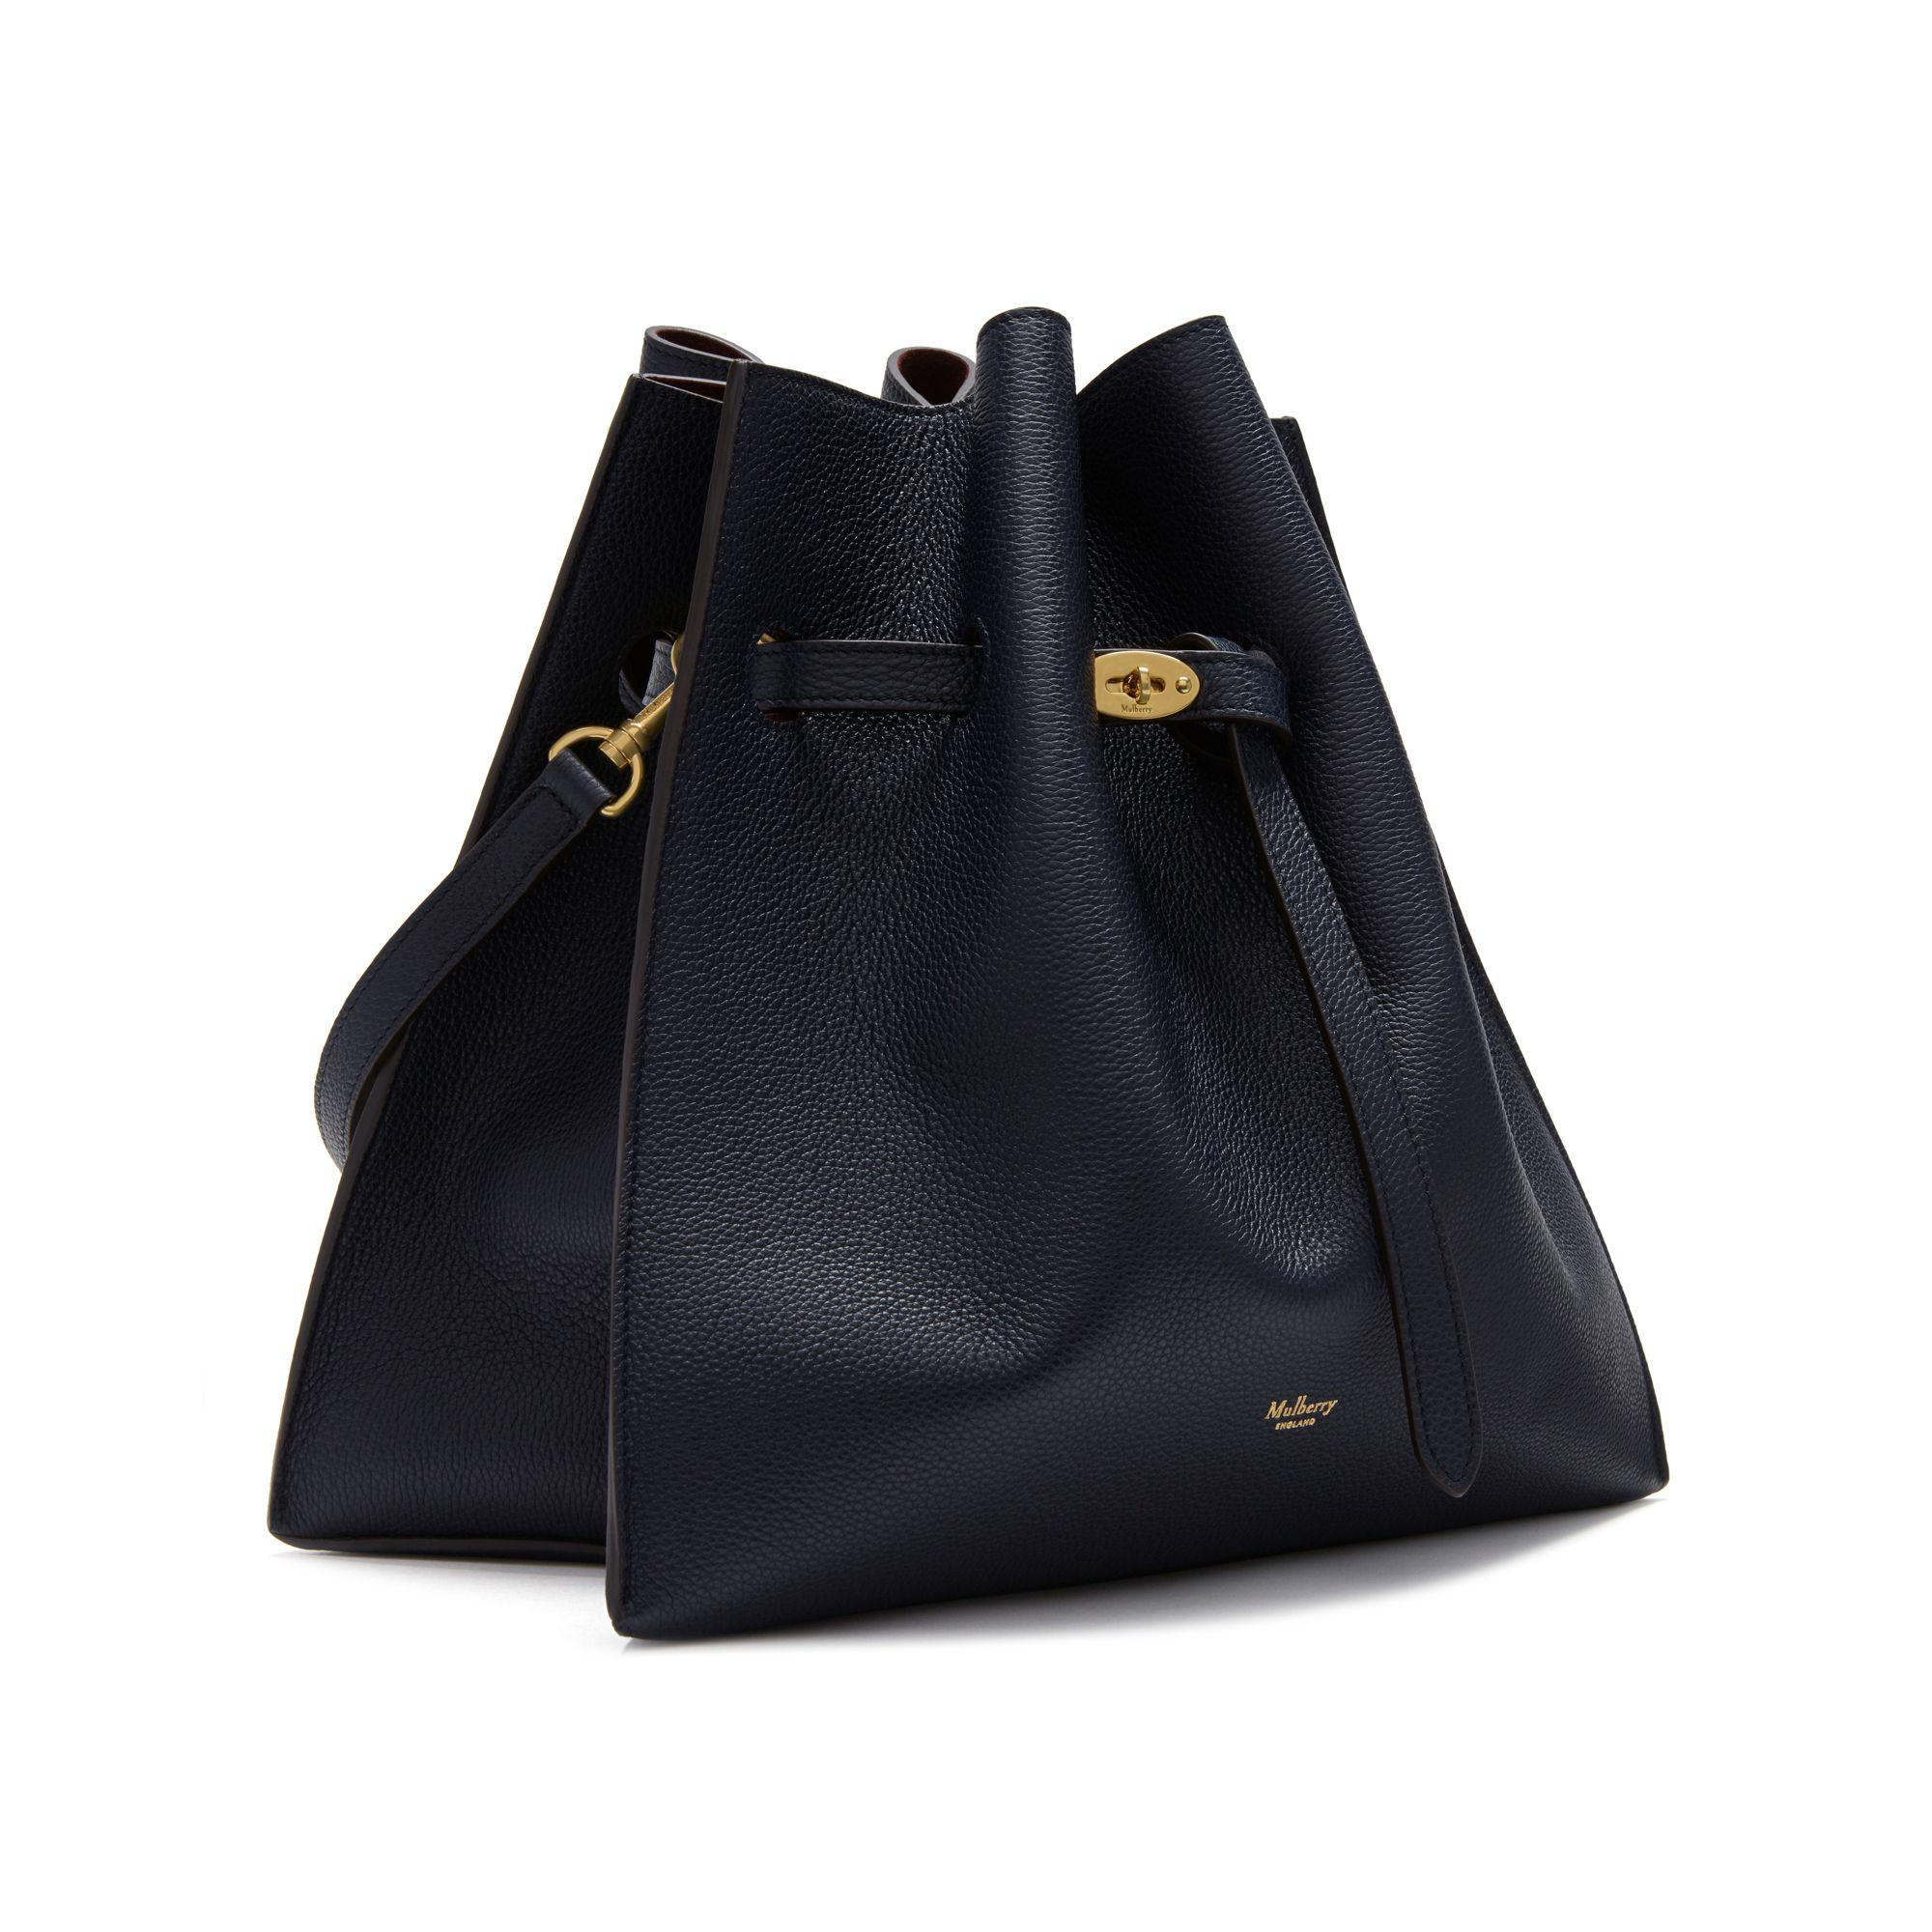 ... shop lyst mulberry tyndale small leather bucket bag in black 935b4 450c3 3c8749400e770